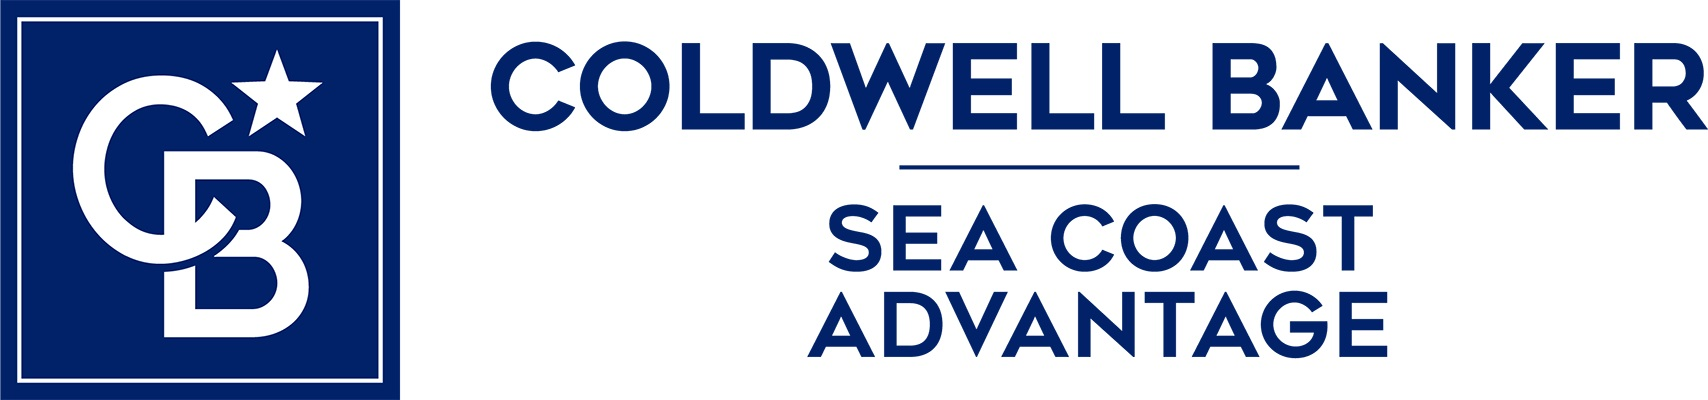 James Hill - Coldwell Banker Sea Coast Advantage Realty